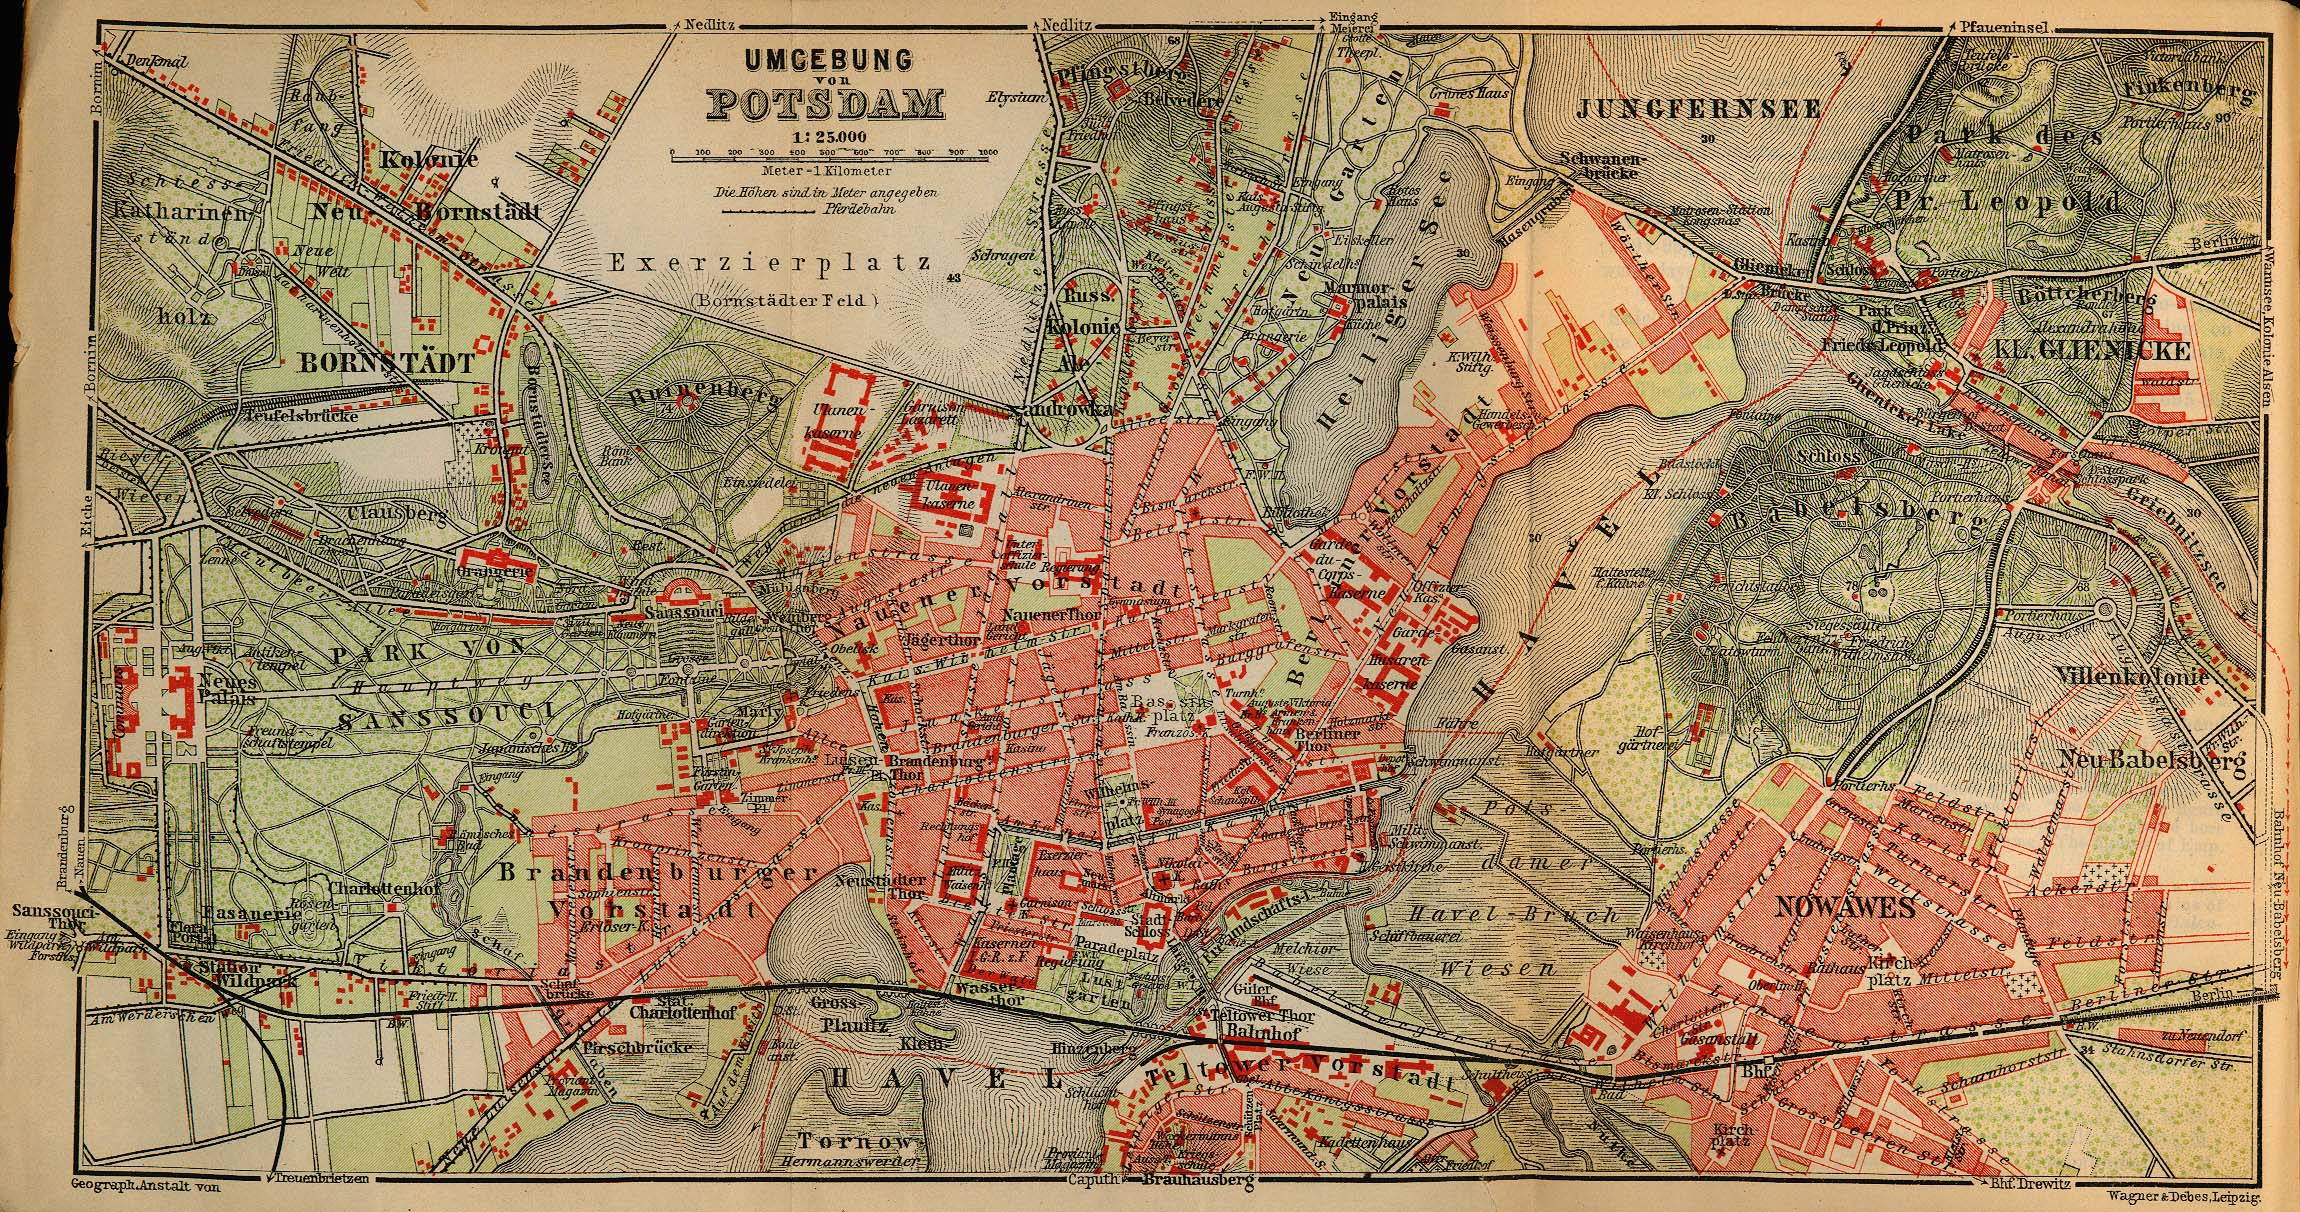 Environs of Potsdam Map, Germany 1910